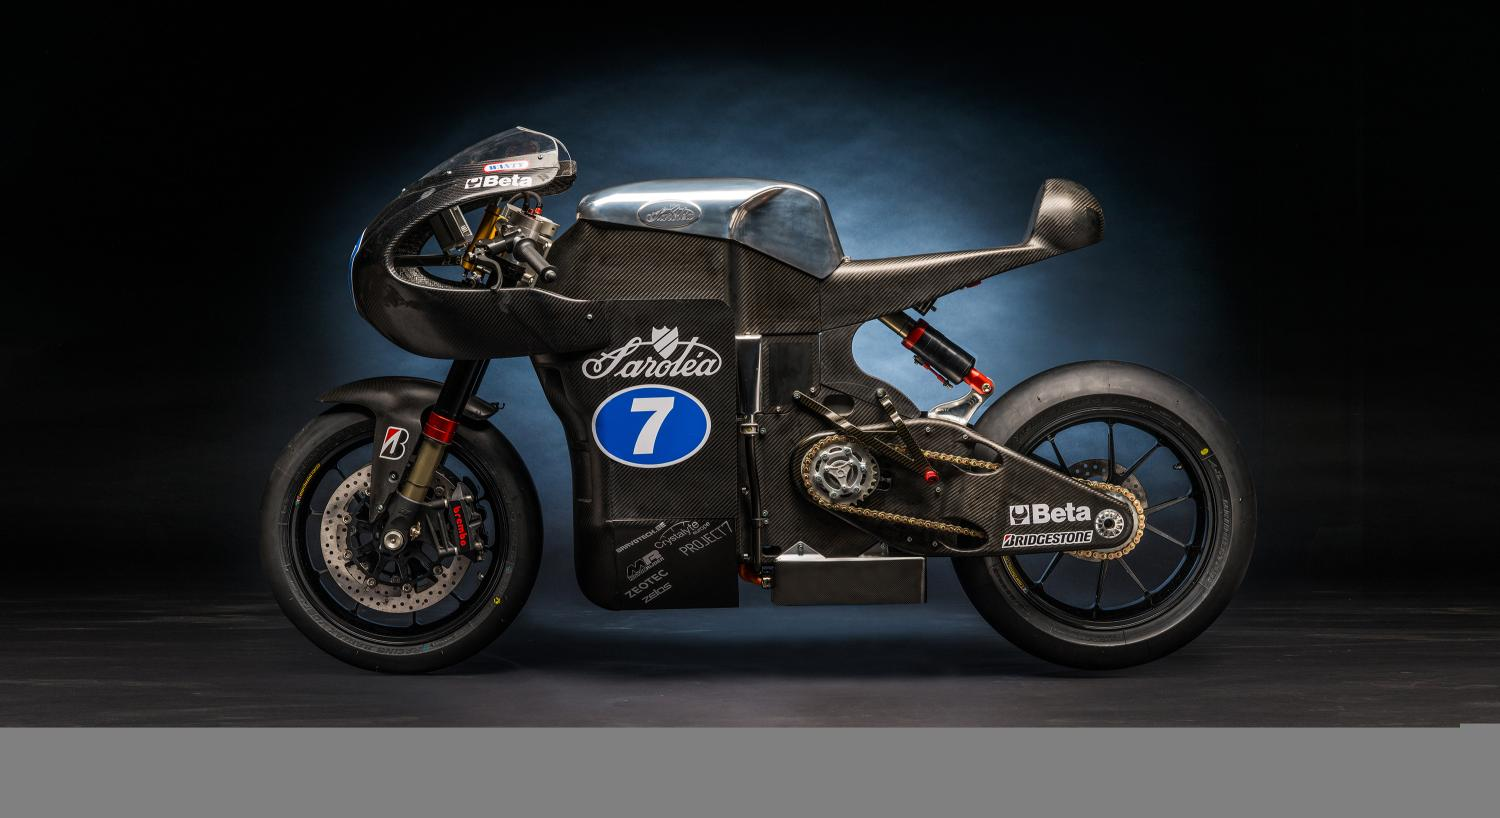 Sarolea_officialpress_HR_medium